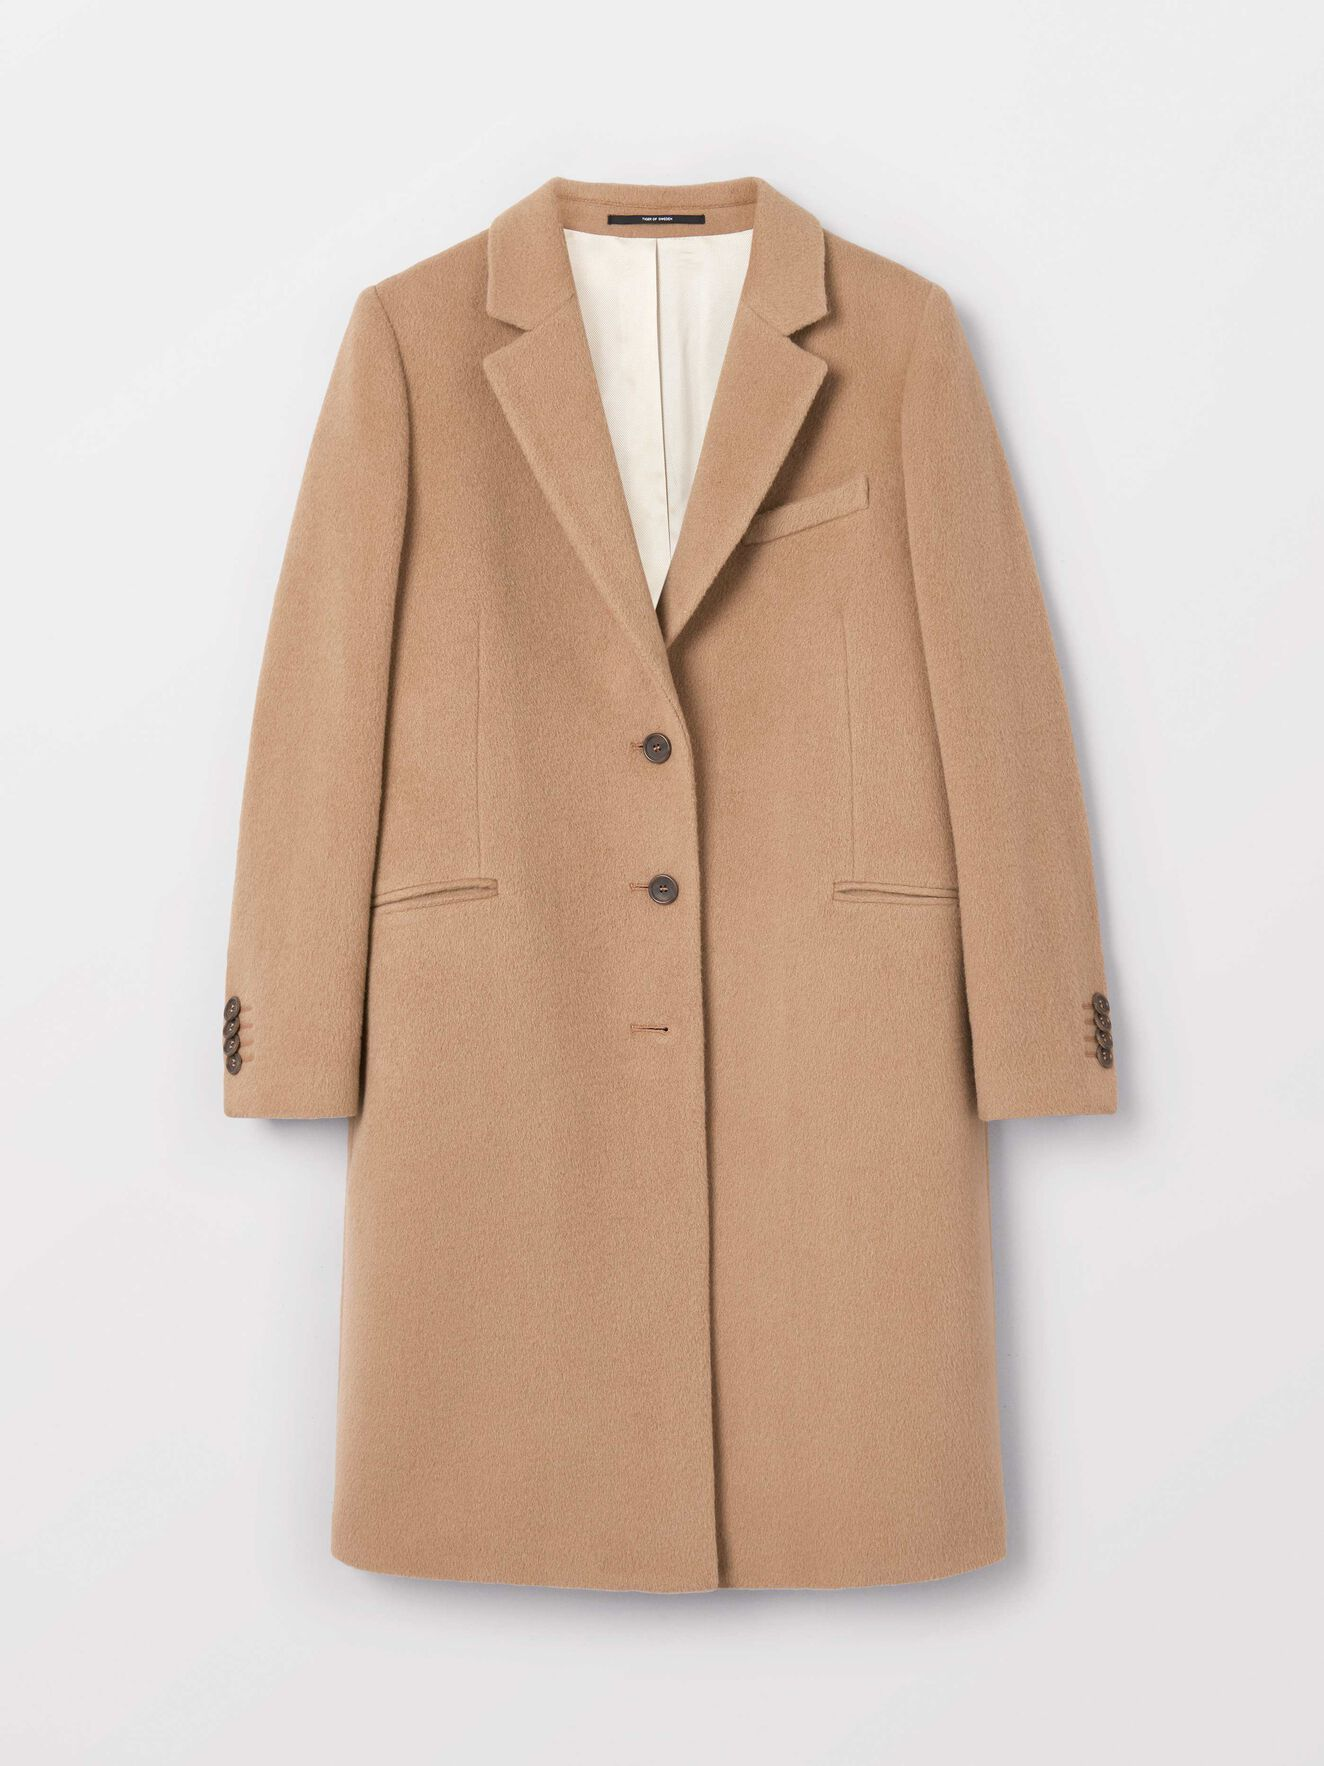 Cianne Coat in Camel from Tiger of Sweden